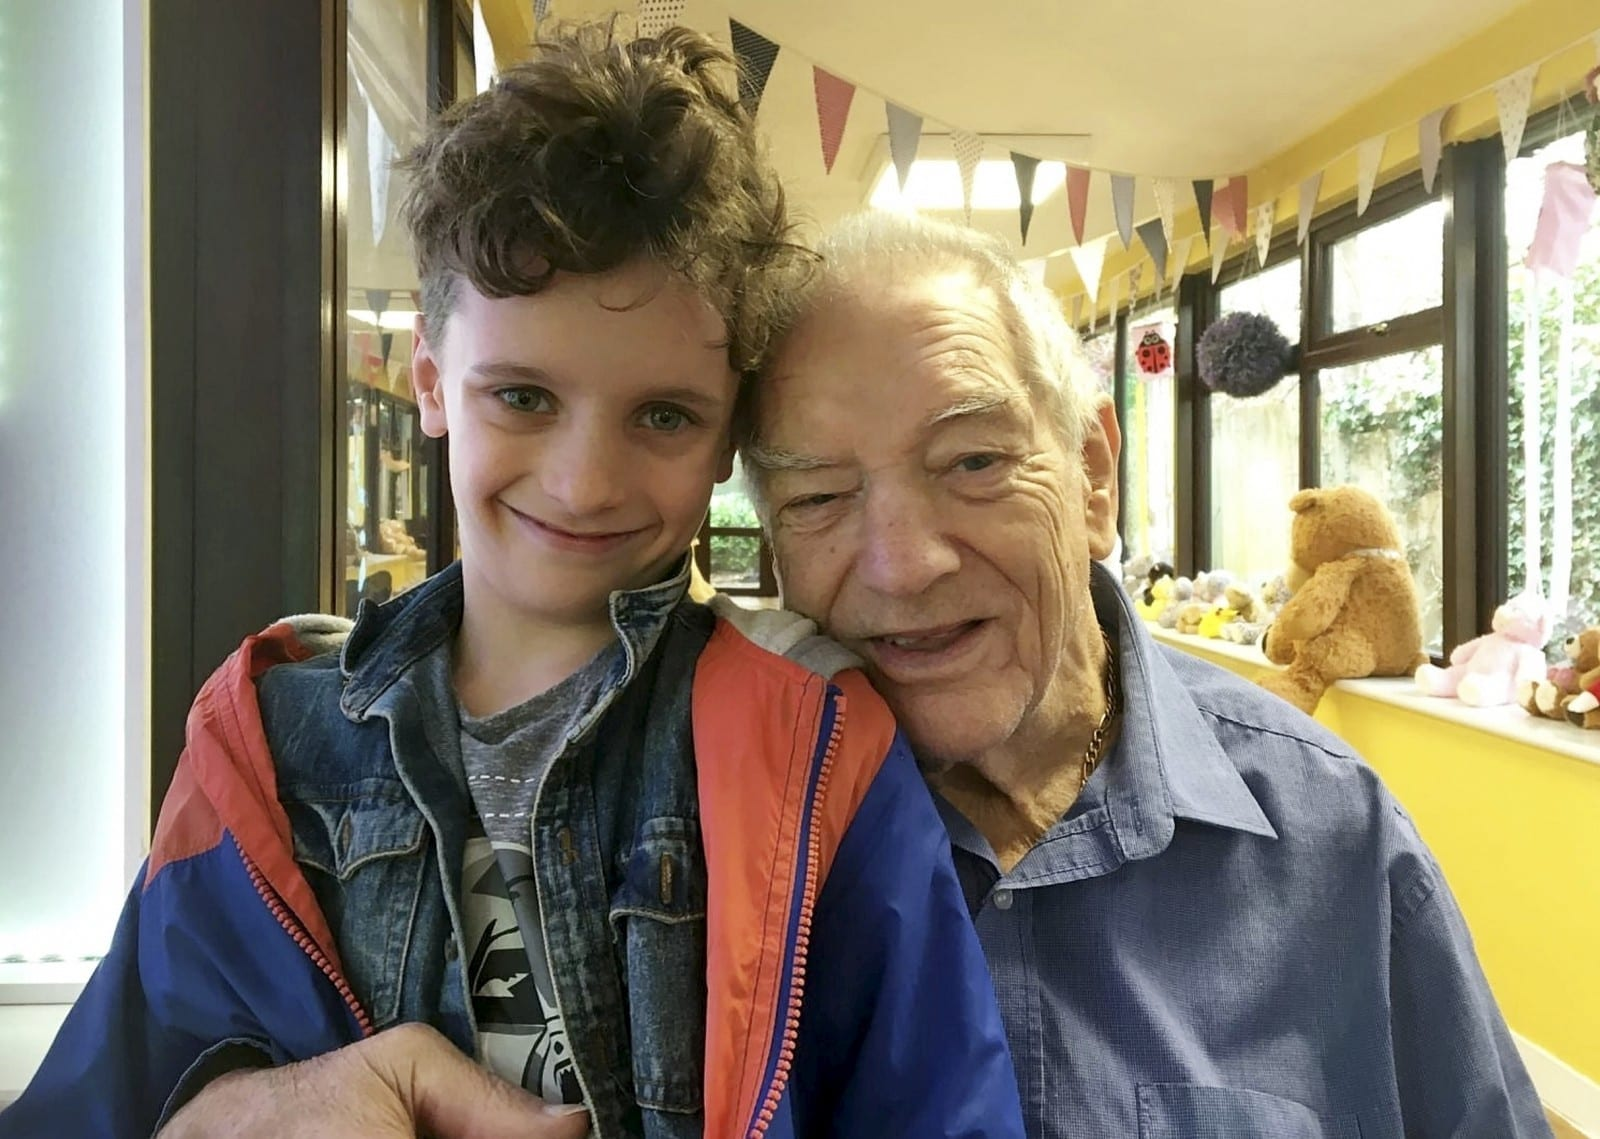 'I Want To Give My Grandad The Trip Of A Lifetime' – Hardy Schoolboy Has Worn SHORTS Every Day For A YEAR – To Raise Enough Money To Send His Granddad To The Seaside